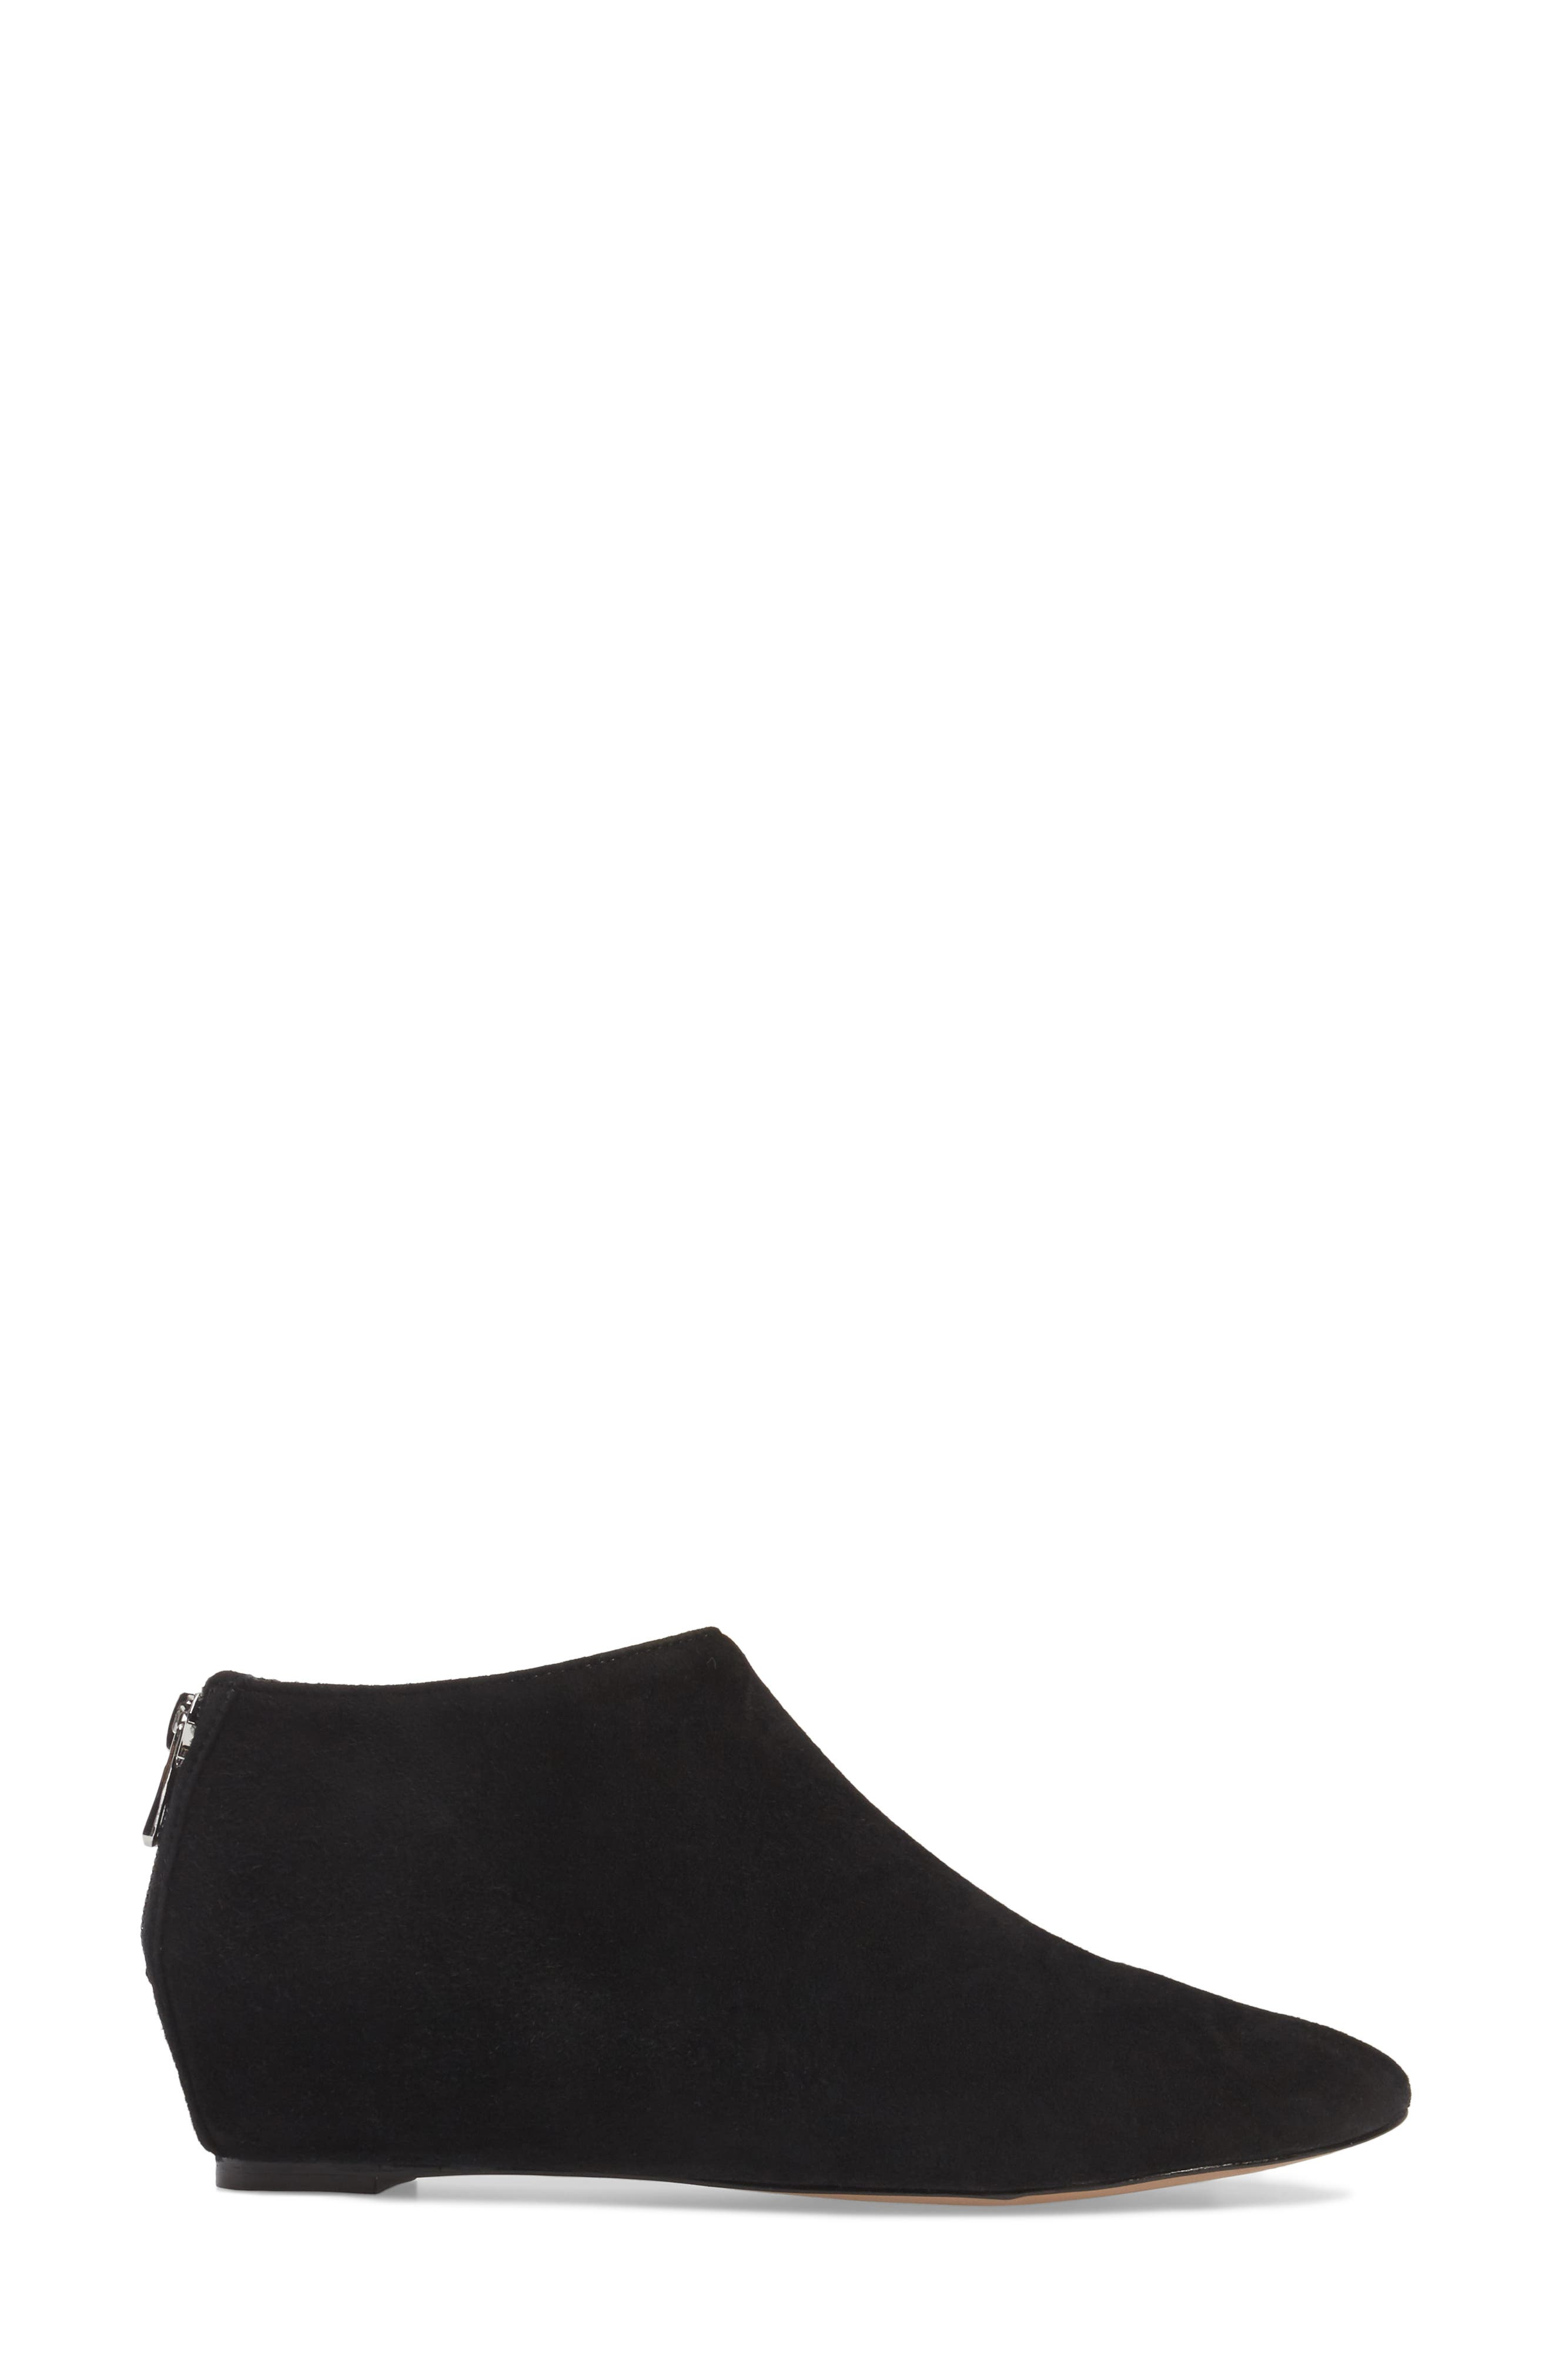 Aves Les Filles Beatrice Ankle Boot,                             Alternate thumbnail 9, color,